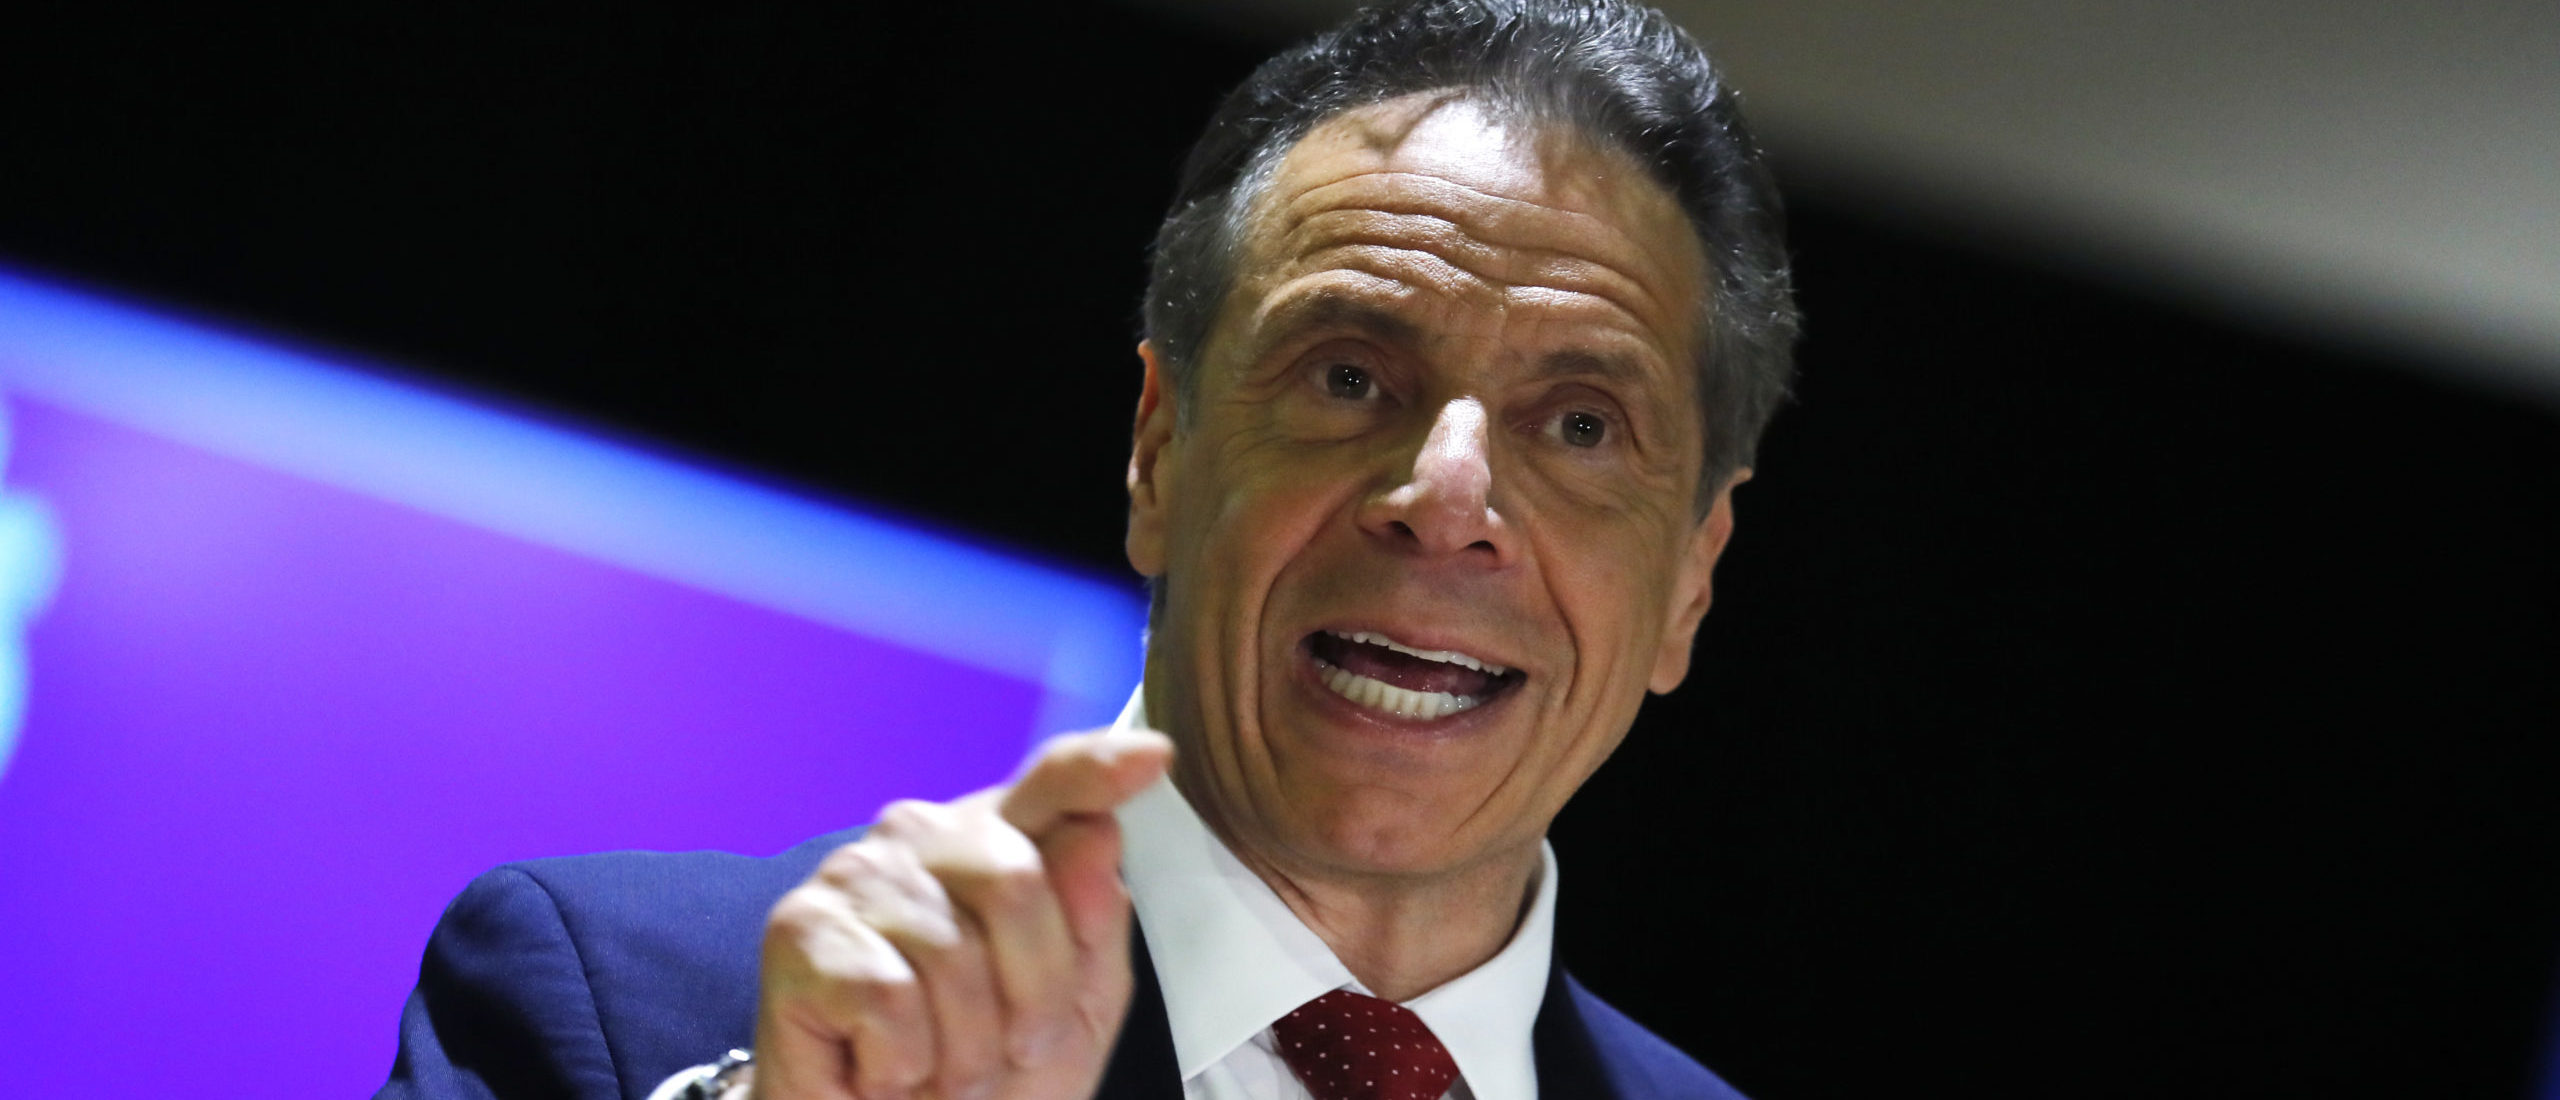 NEW YORK, NEW YORK - APRIL 23: New York Governor Andrew Cuomo speaks at an event to announce five new walk-in pop-up vaccination sites for New York City Bodega, grocery store and supermarket workers amid the coronavirus disease (COVID-19) pandemic, in the Harlem section of Manhattan on April 23, 2021 in New York City. (Photo by Mike Segar-Pool/Getty Images)